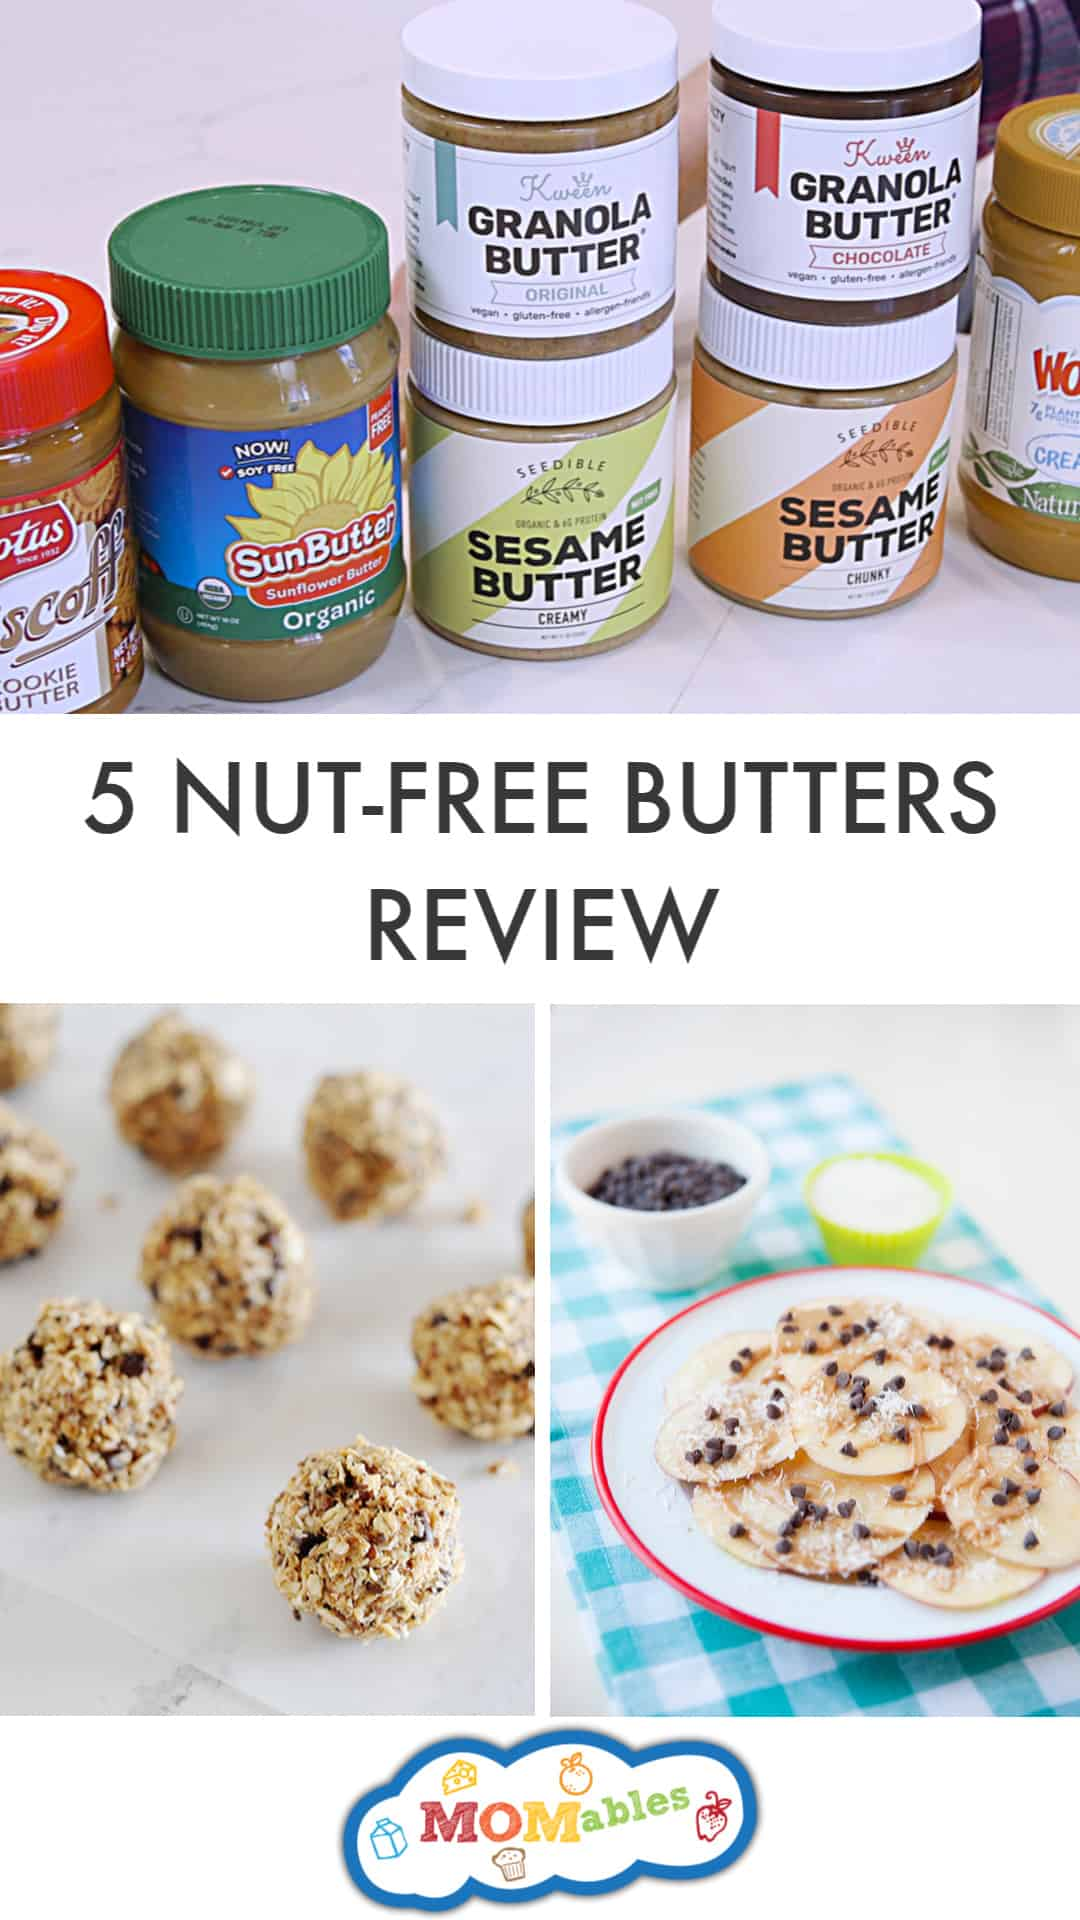 the best peanut butter alternatives so you can make nut-free recipes